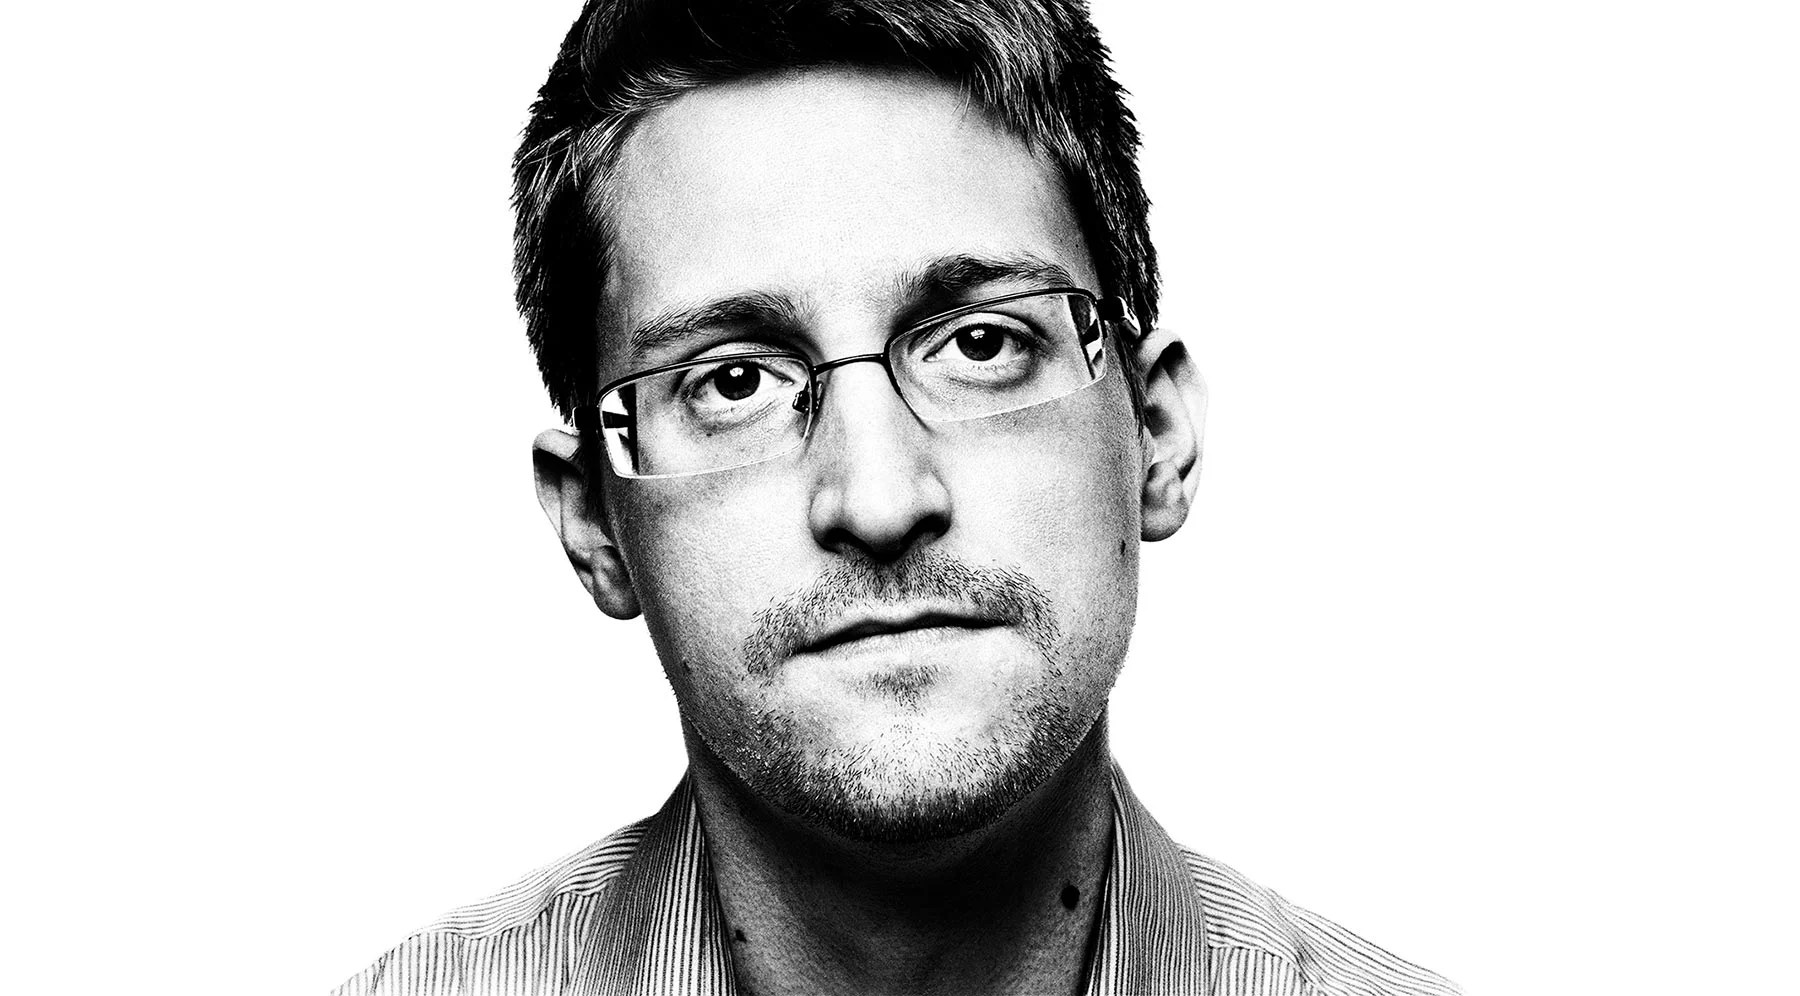 Haven la nueva App de Edward Snowden